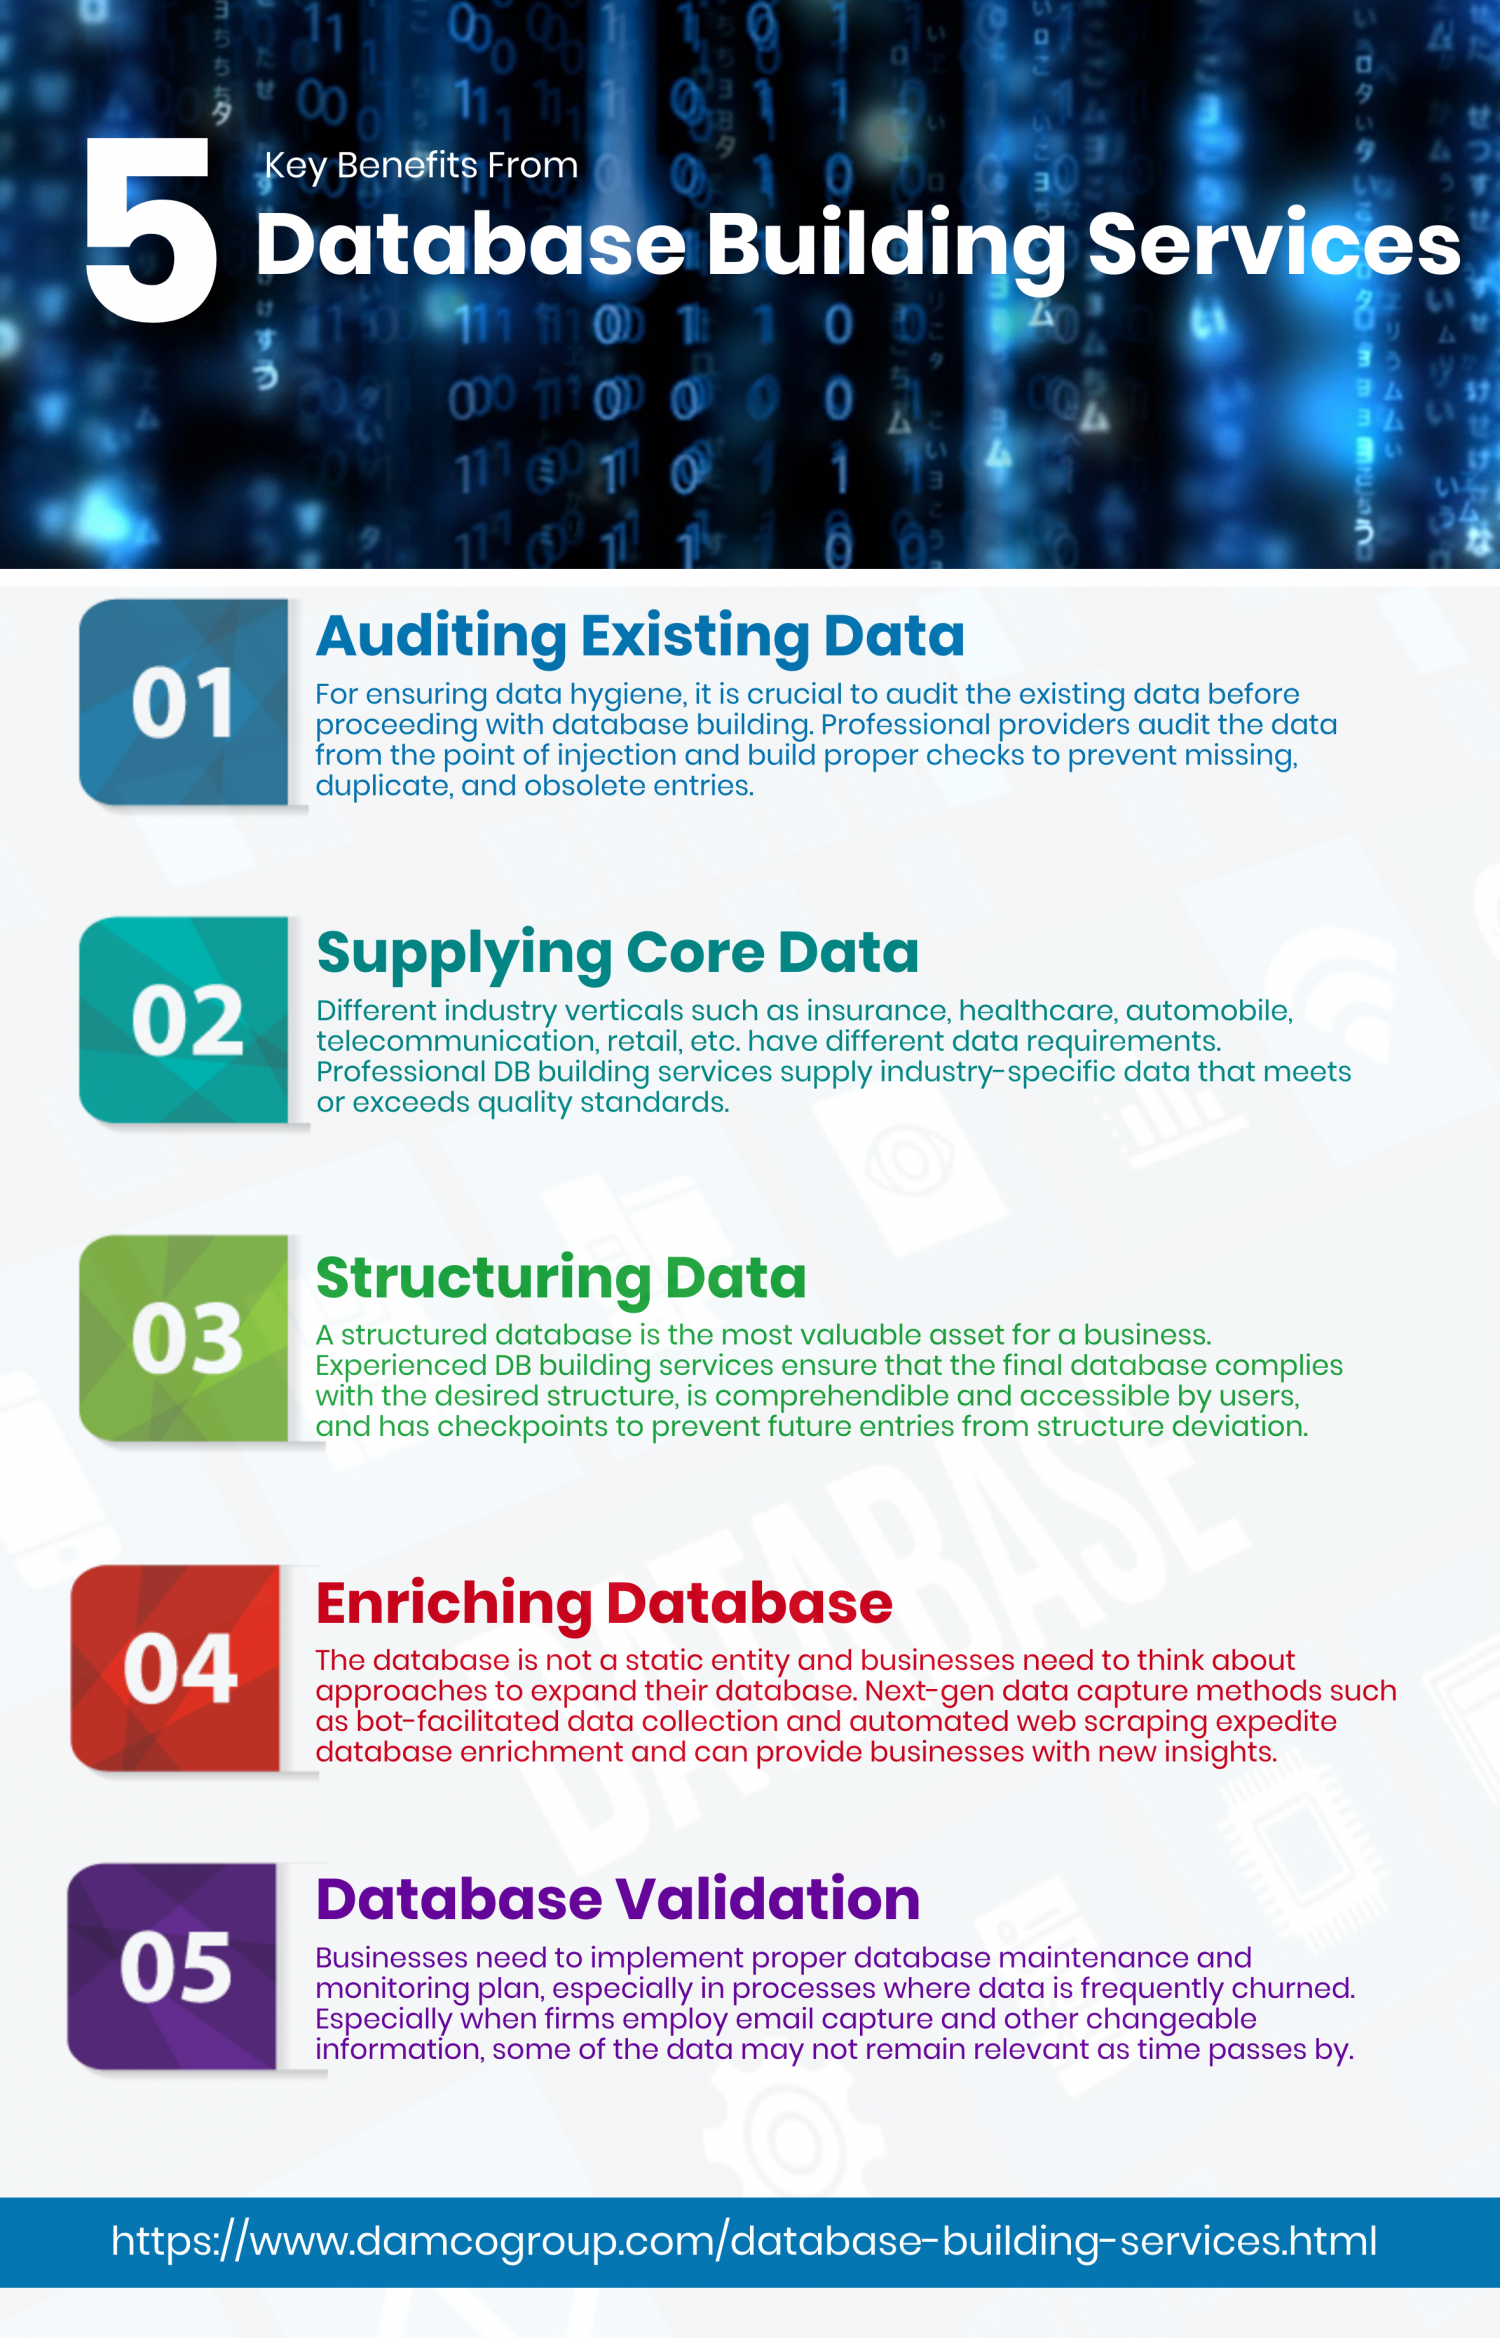 5 Key Benefits From Database Building Services  Infographic